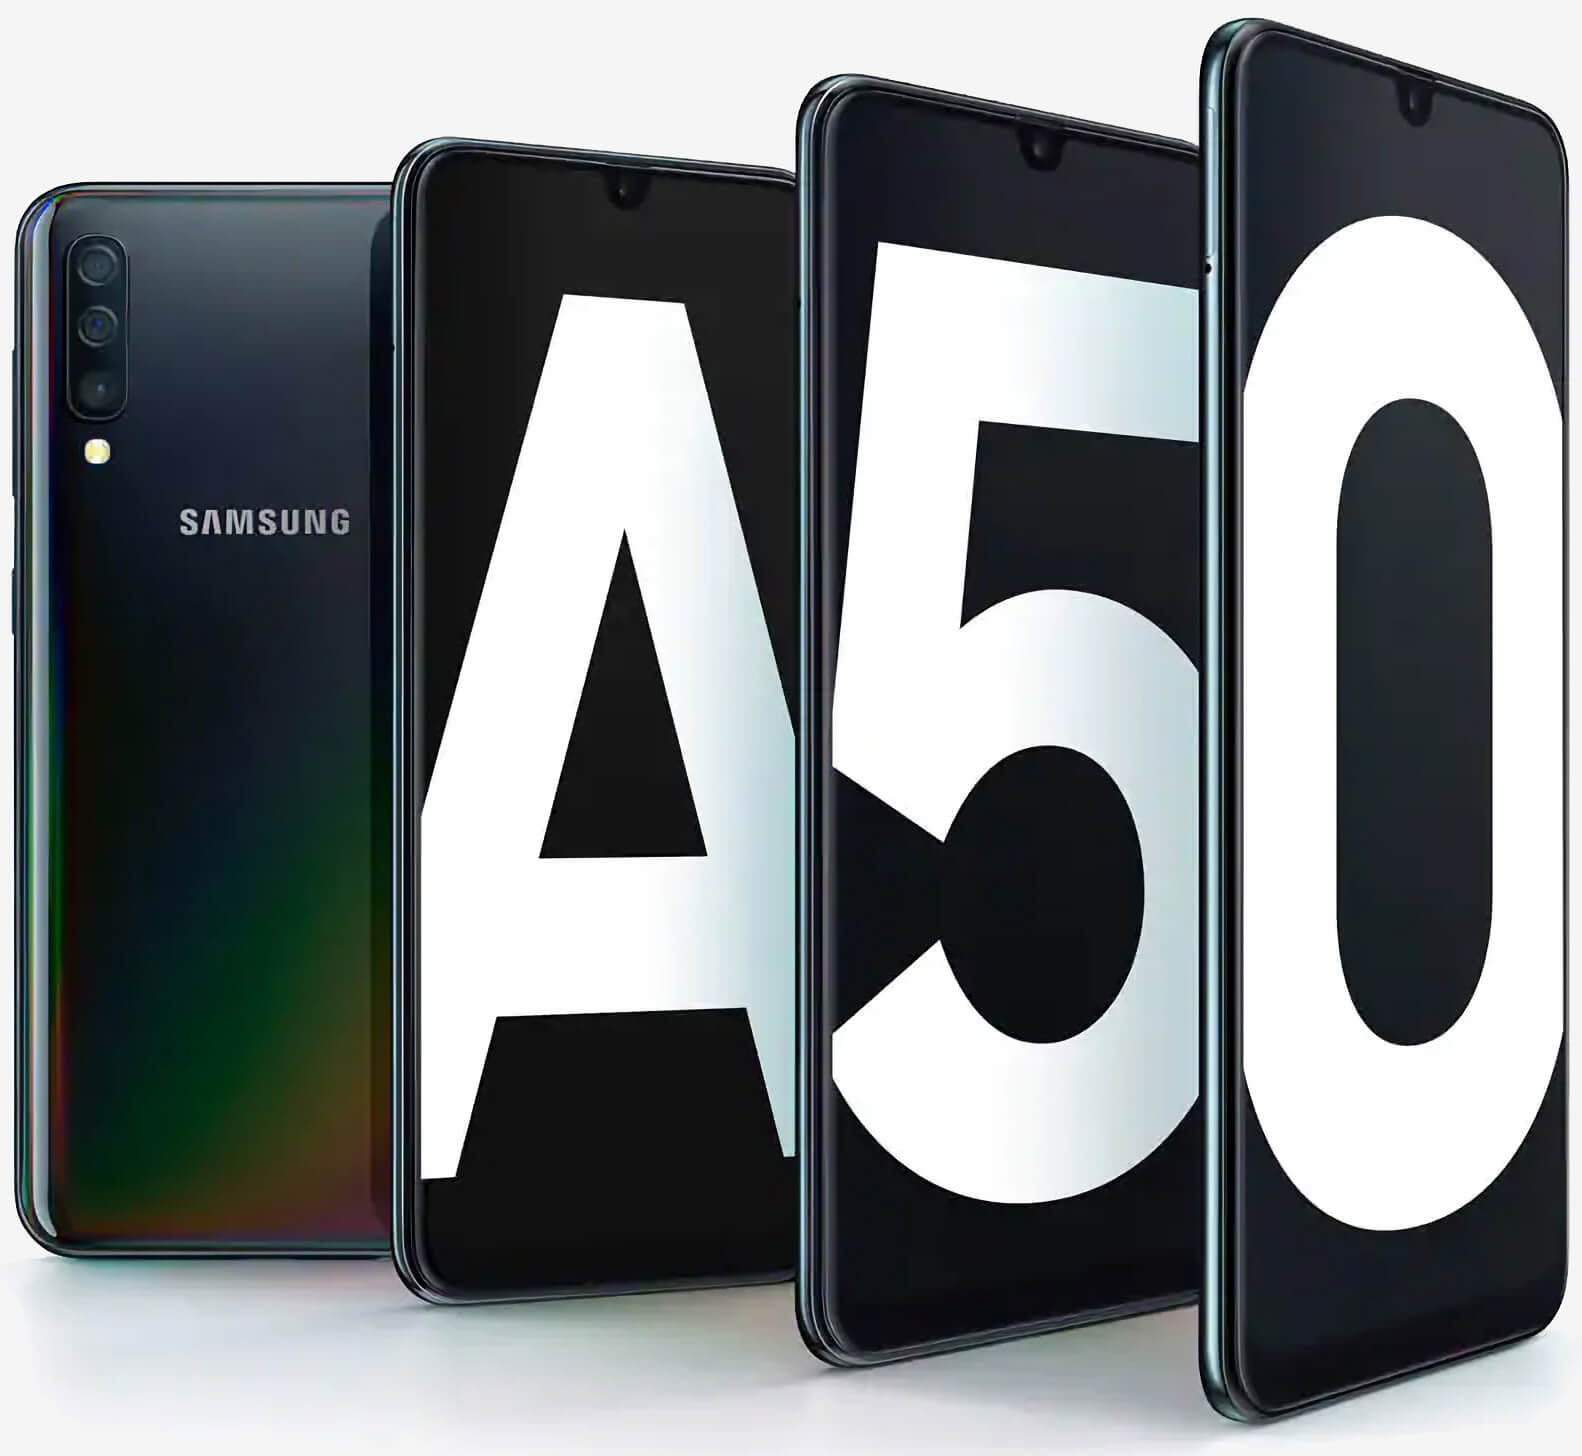 Samsung's $350 Galaxy A50 smartphone arrives in the US on June 13